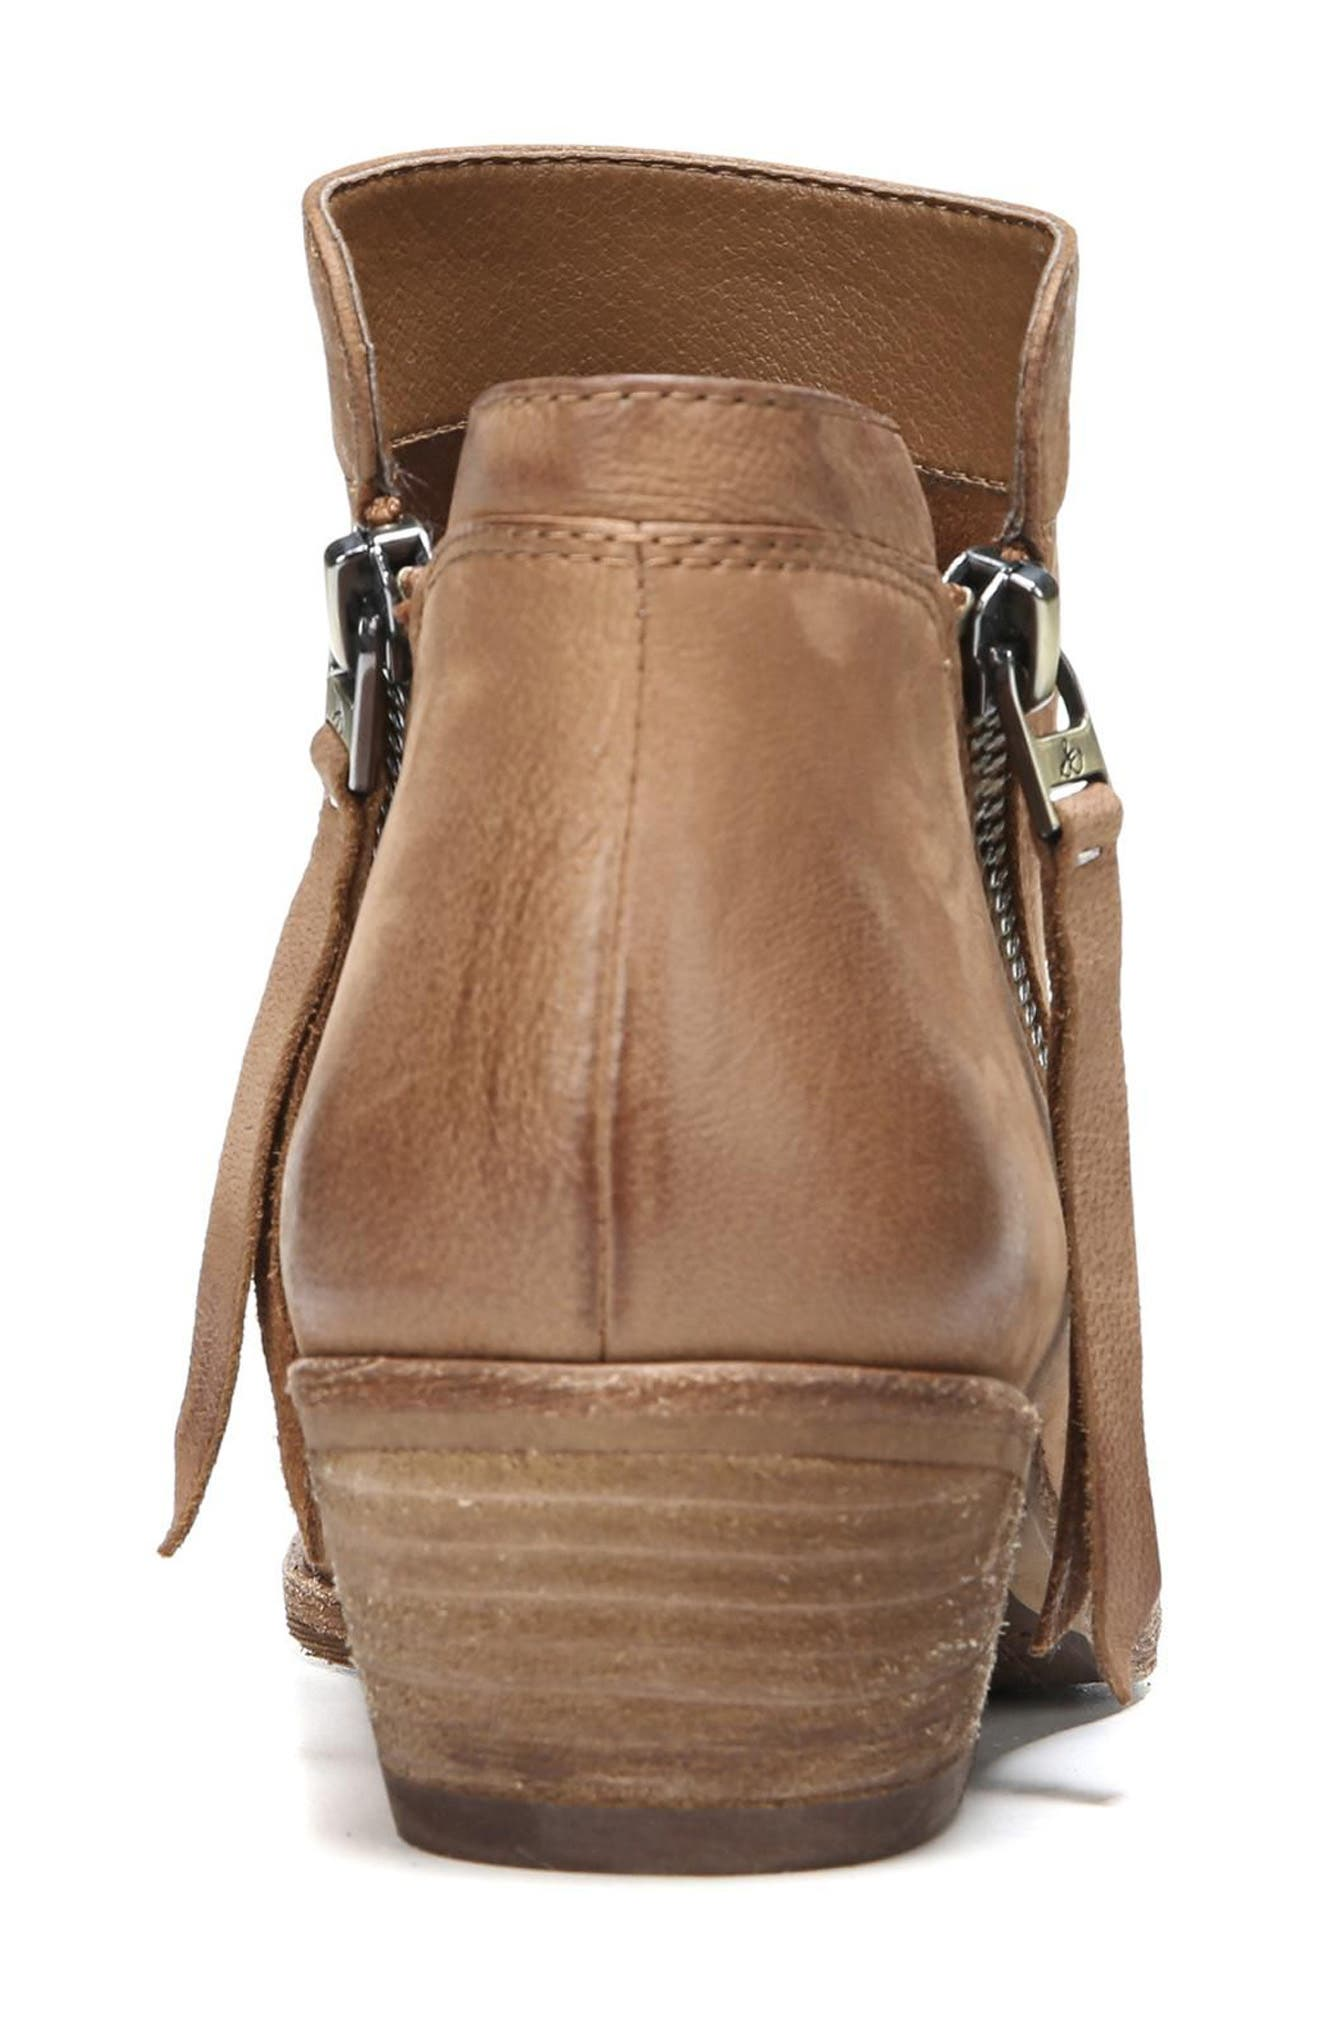 Packer Bootie,                             Alternate thumbnail 7, color,                             DEEP SADDLE LEATHER